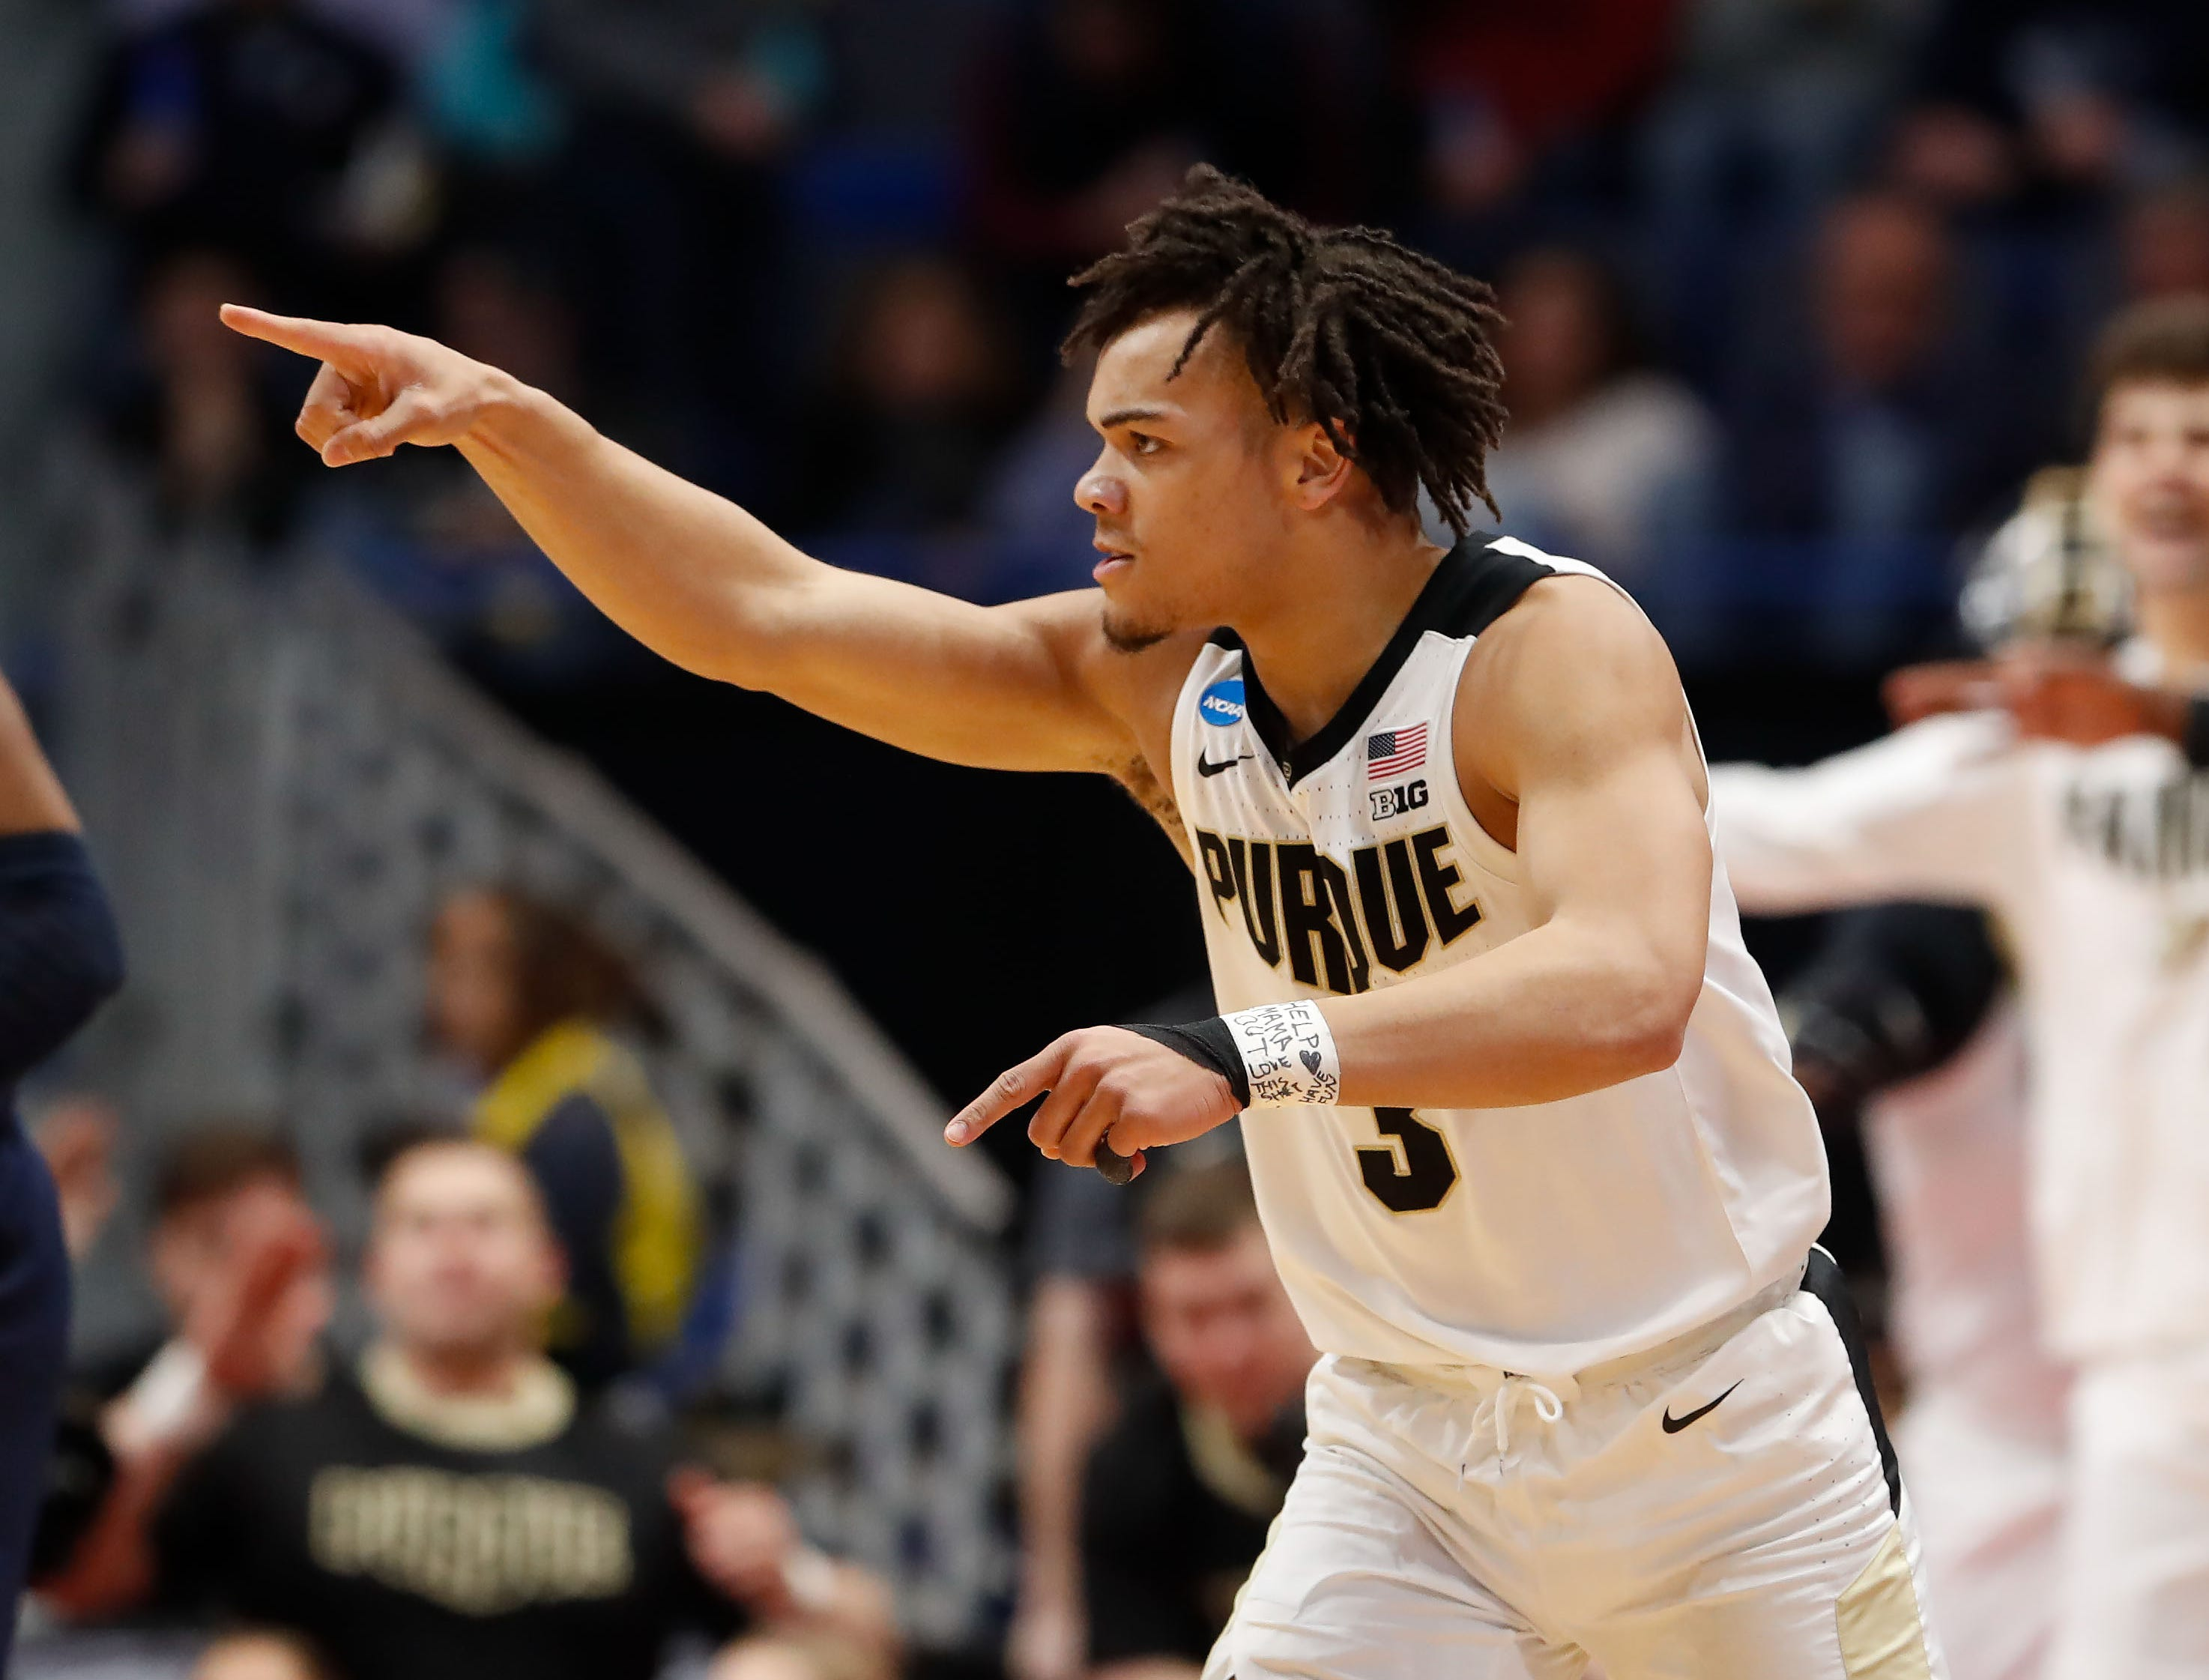 Mar 23, 2019; Hartford, CT, USA; Purdue Boilermakers guard Carsen Edwards (3) reacts after a score against the Villanova Wildcats during the second half of a game in the second round of the 2019 NCAA Tournament at XL Center. Mandatory Credit: David Butler II-USA TODAY Sports